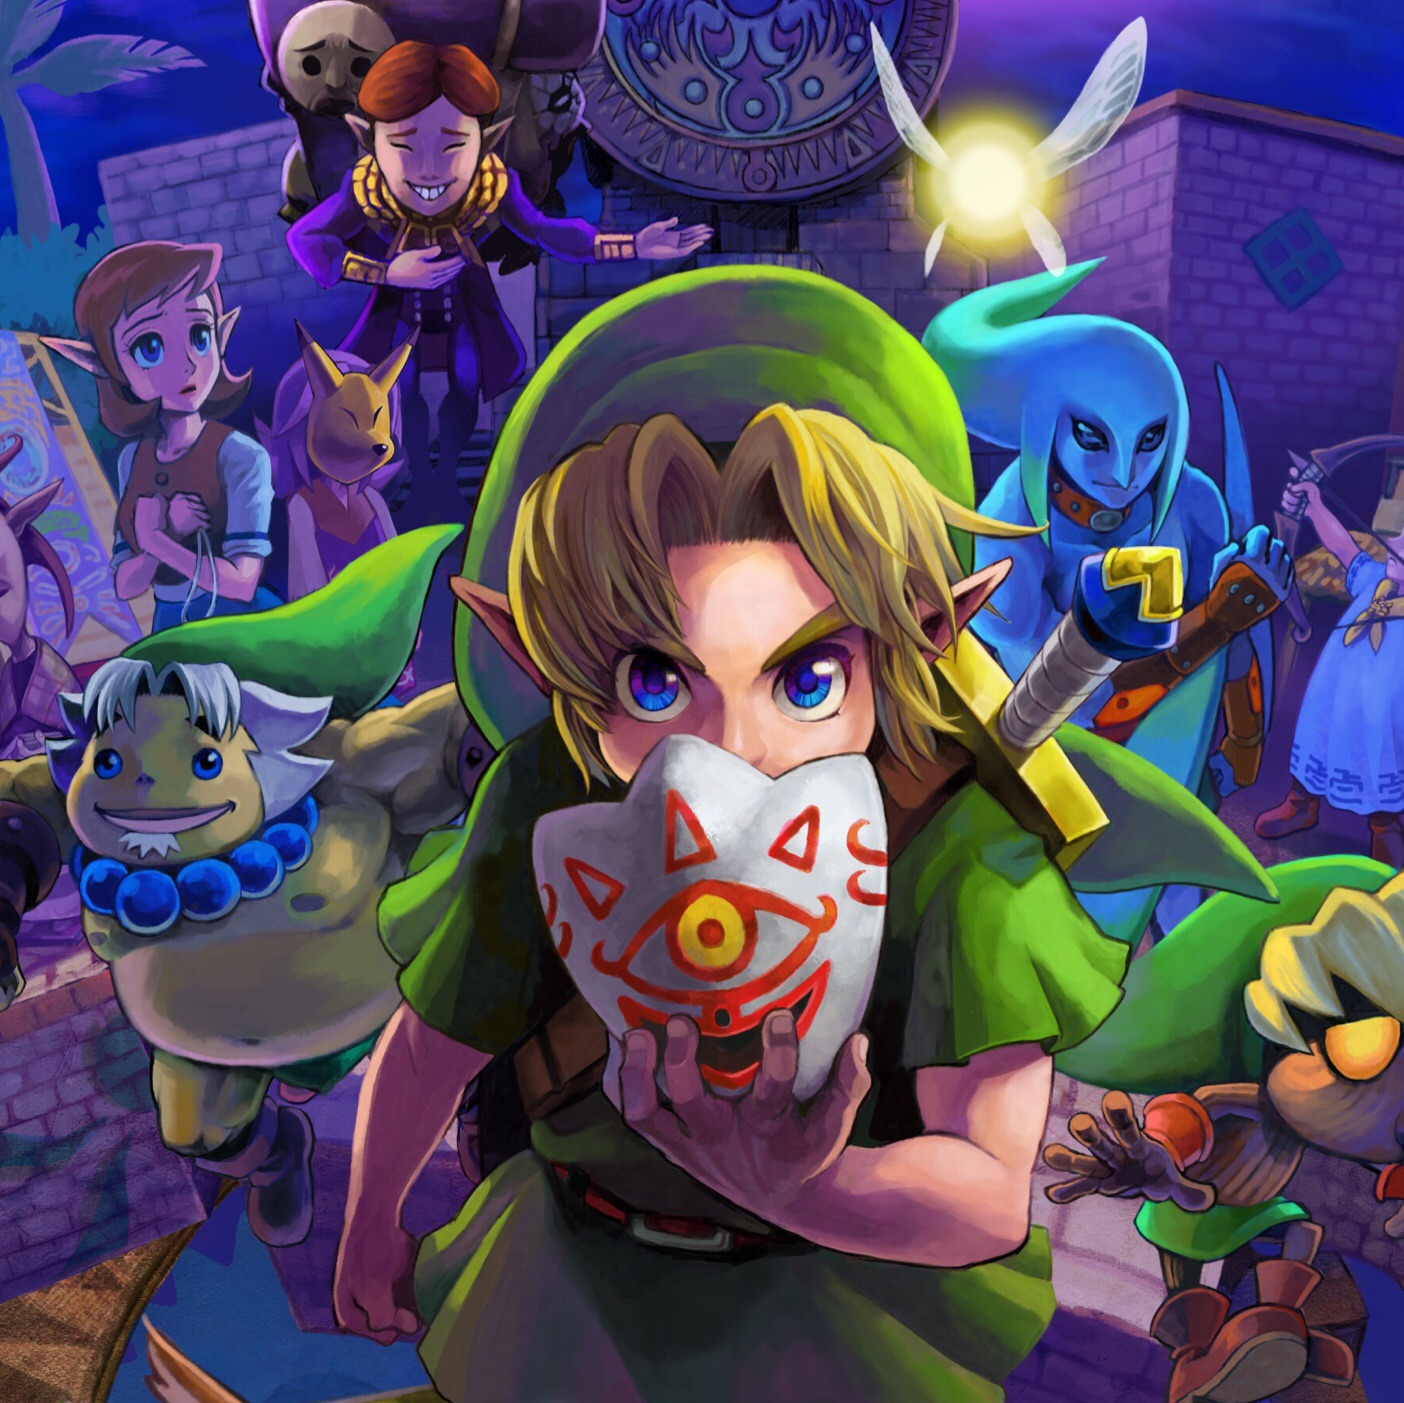 5 things we learnt about Majora's Mask in the new Iwata Asks